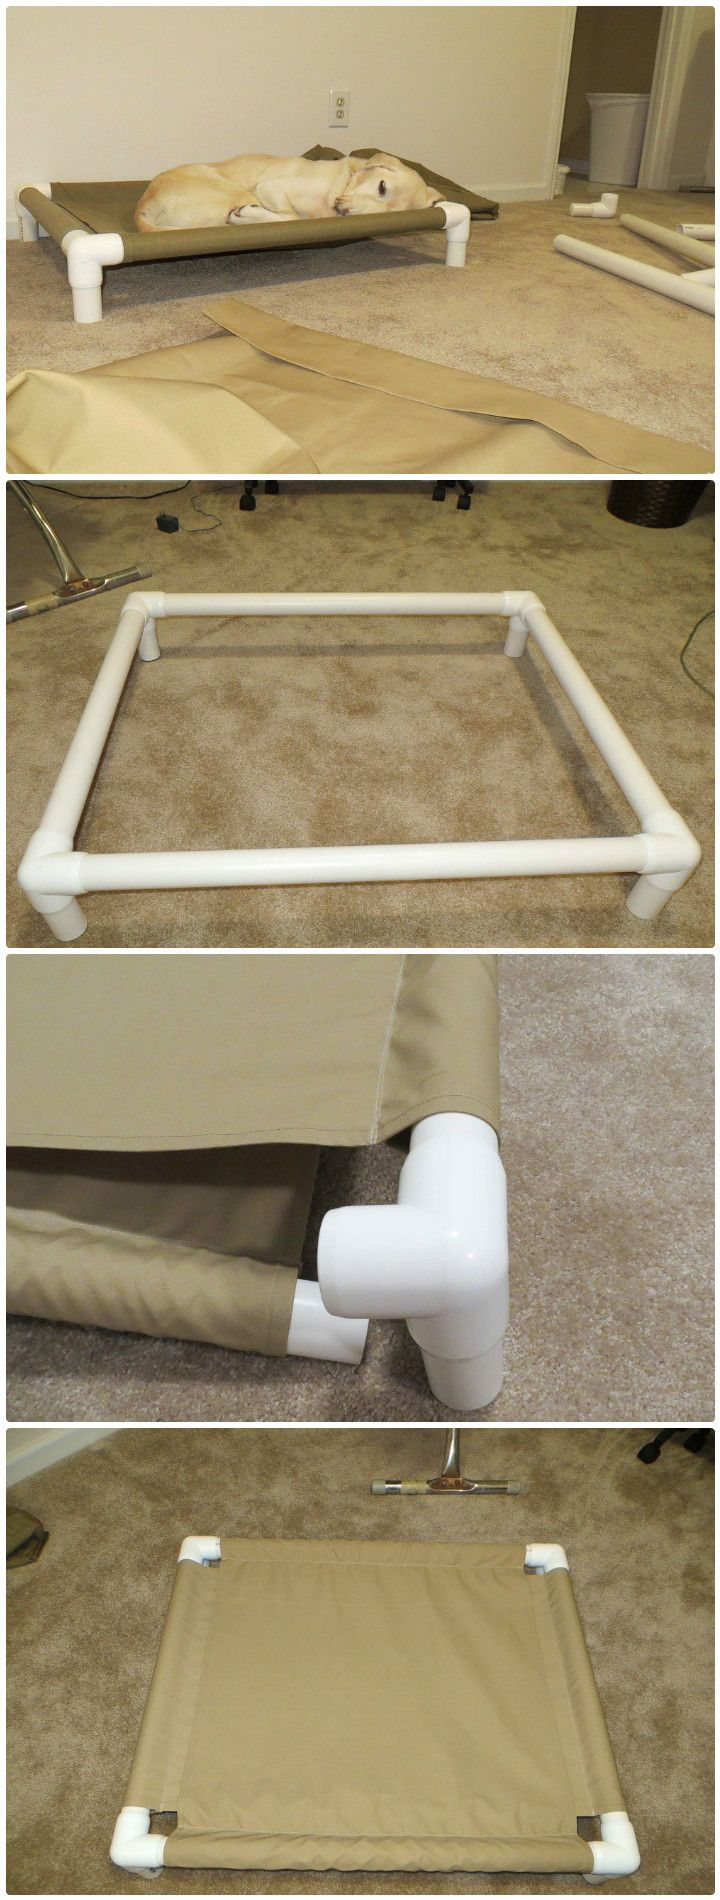 Pvc pipe projects bdsm